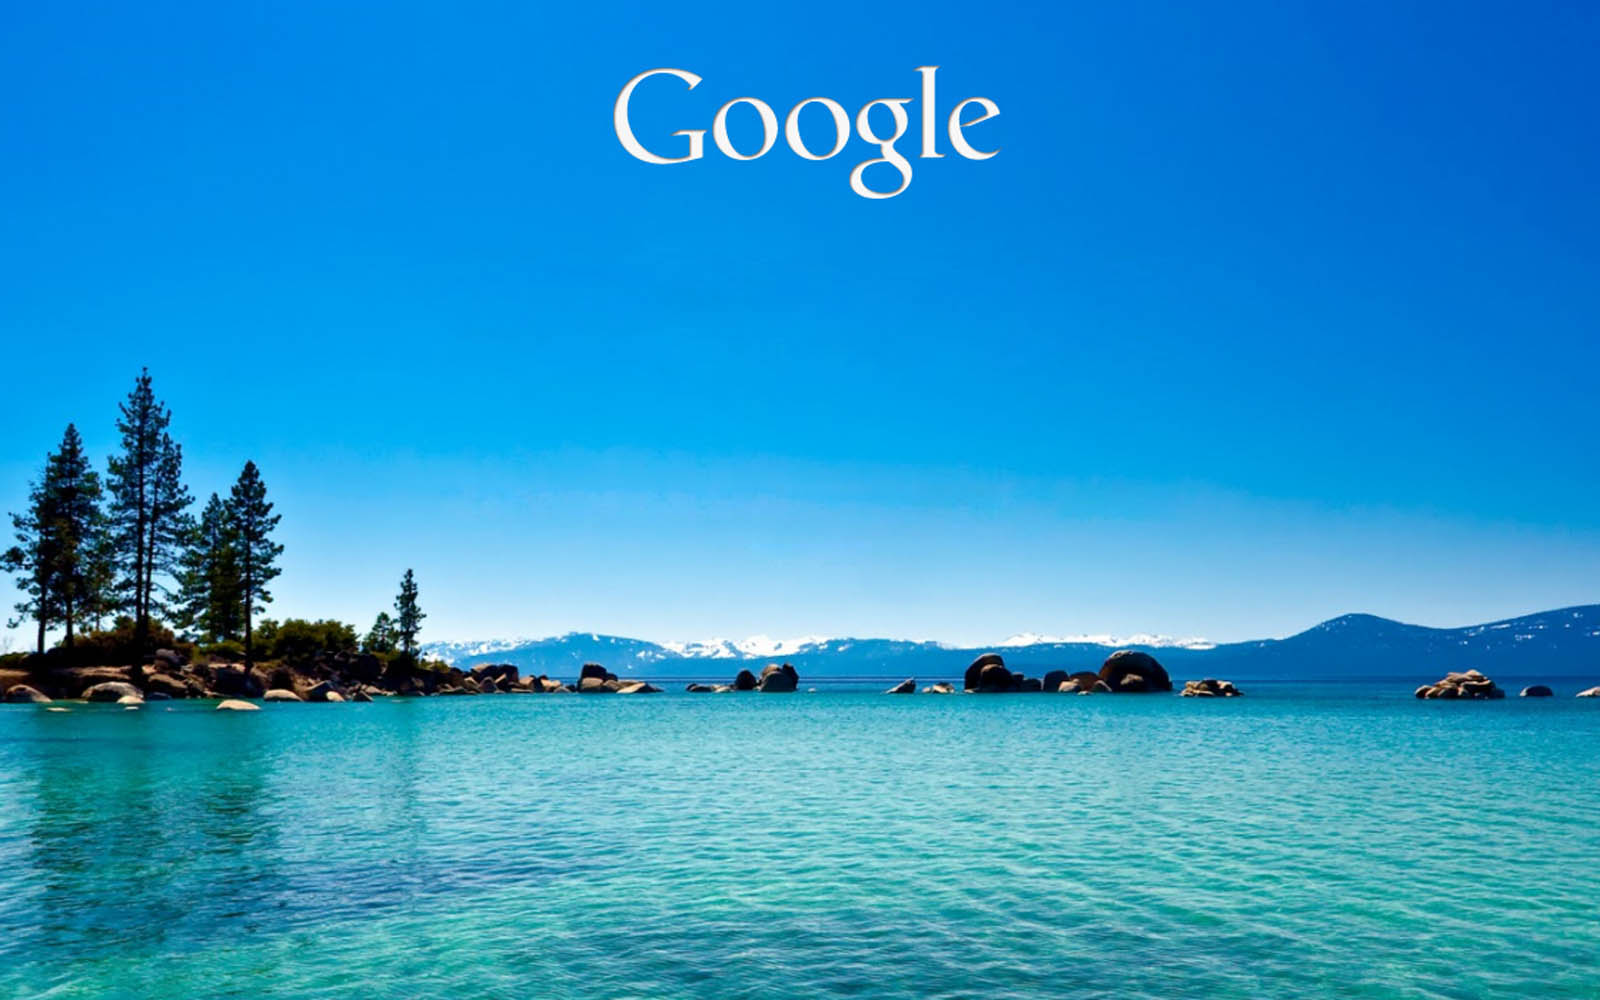 Google Backgroundswallpapers screensavers 1600x1000